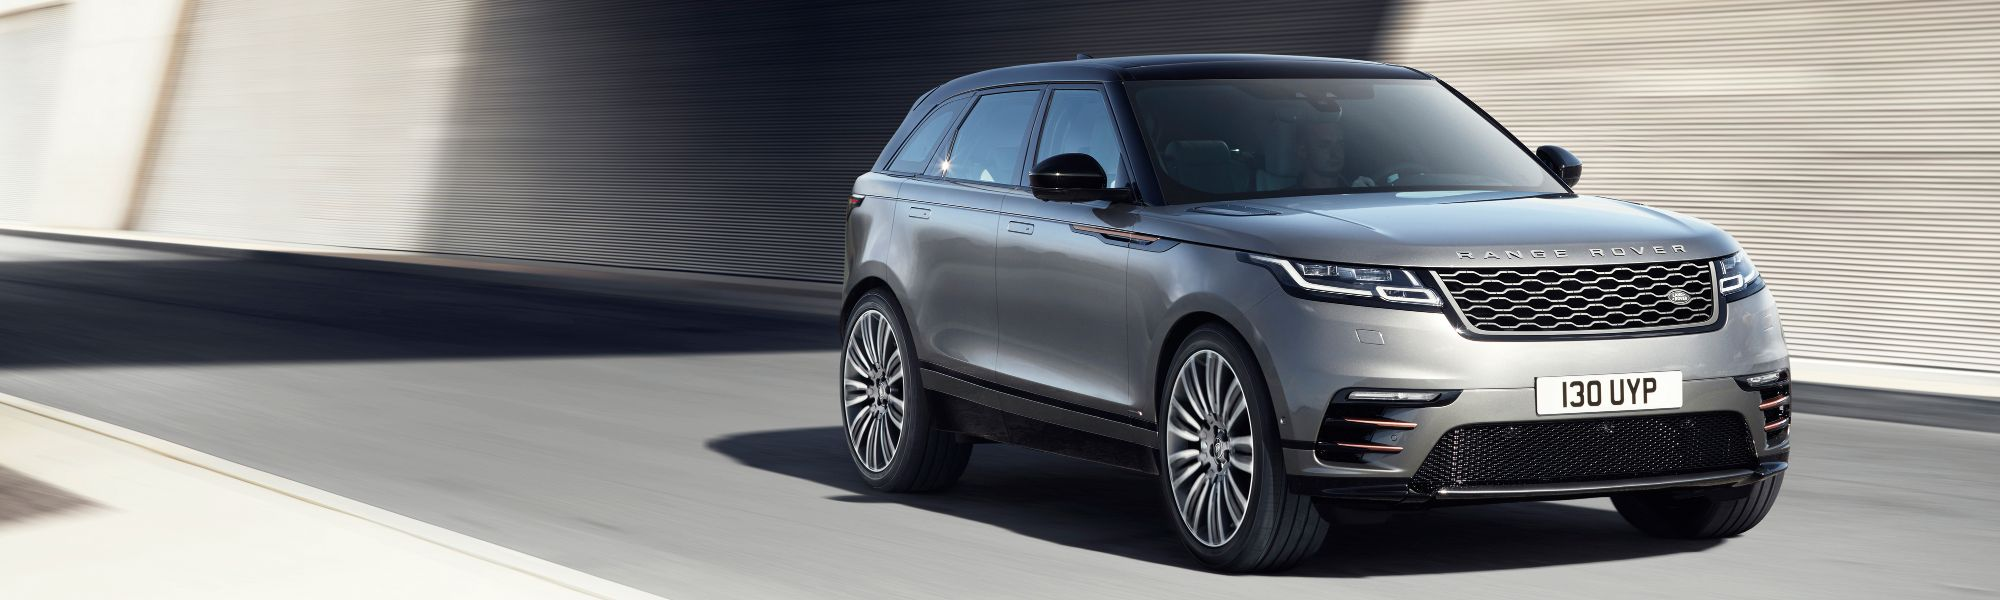 Land Rover Fort Worth >> New Range Rover Velar Lease Purchase Dallas Fort Worth